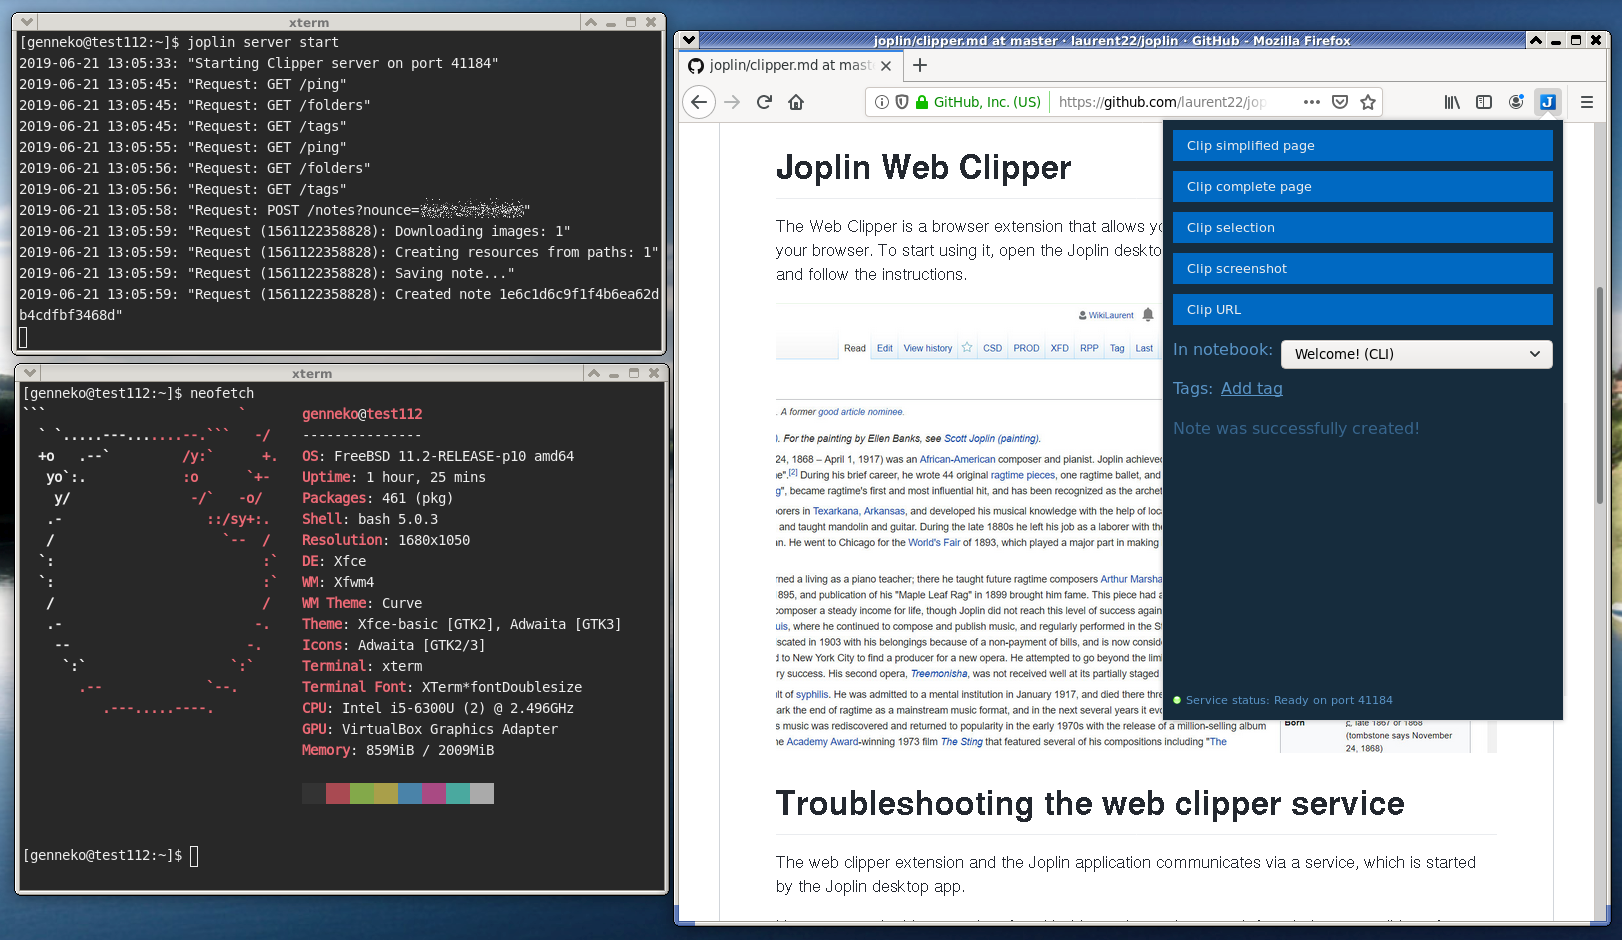 Web Clipper runs on FreeBSD